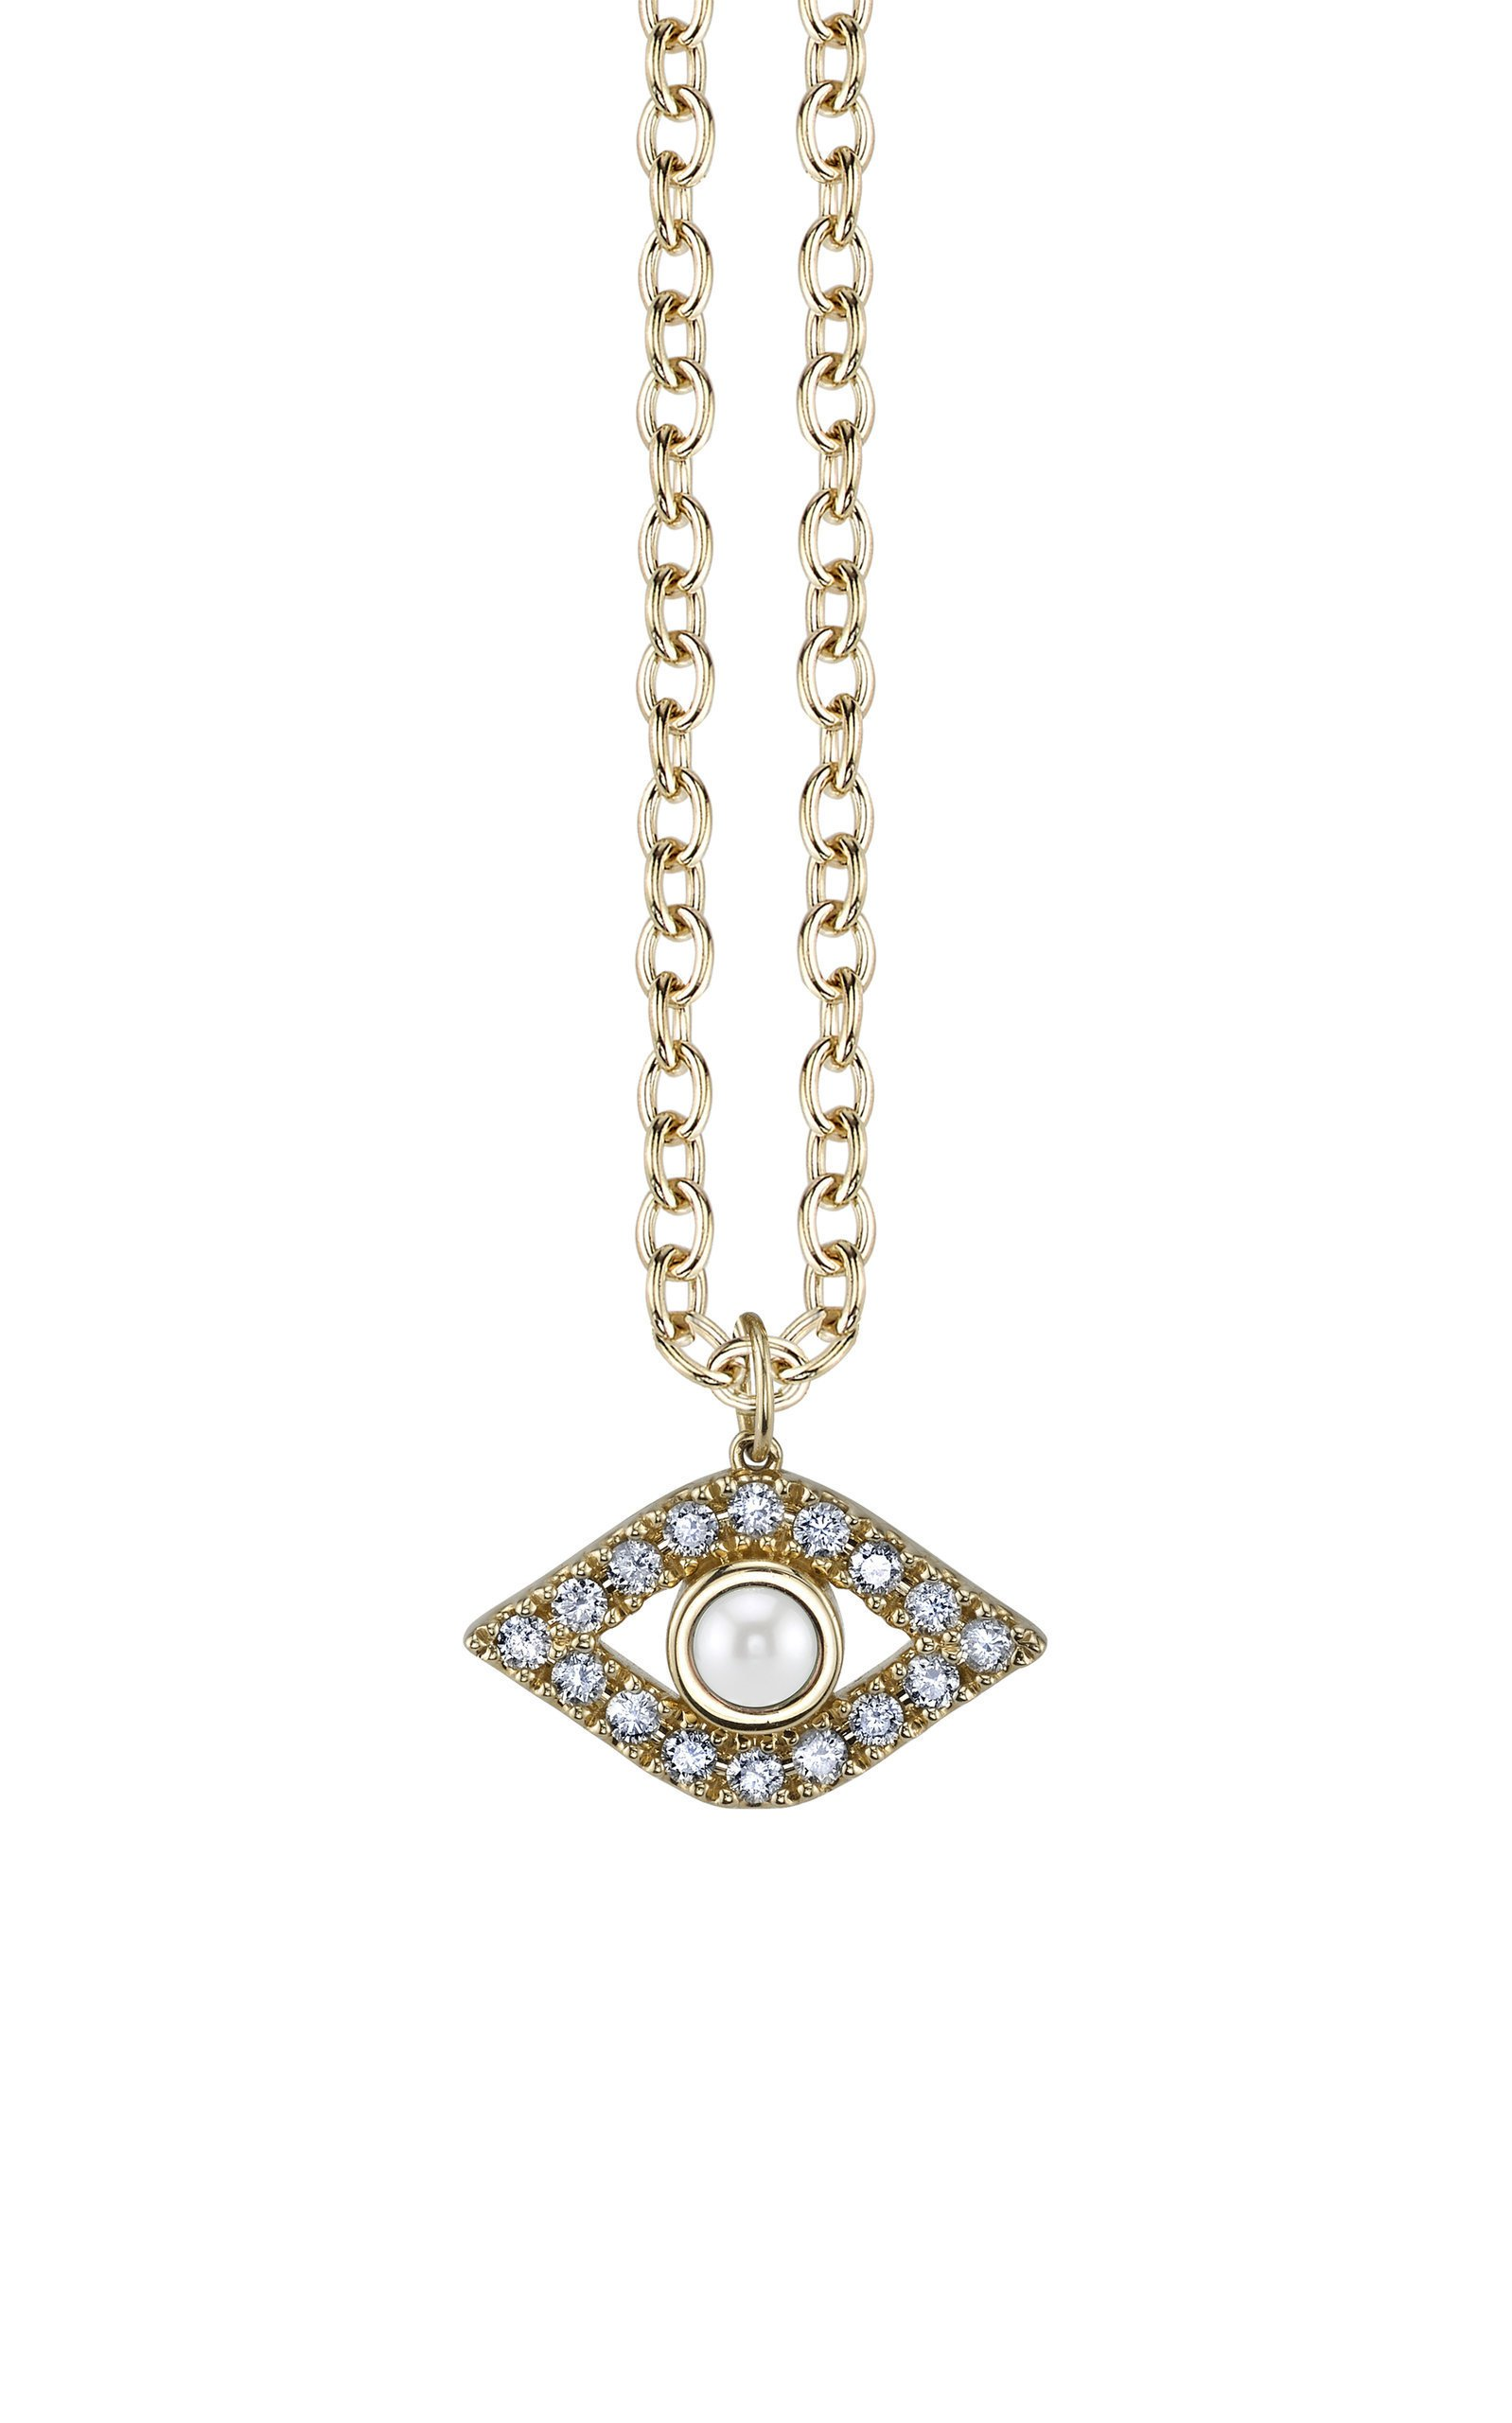 Sydney Evan Pearl And Diamond Evil Eye Necklace